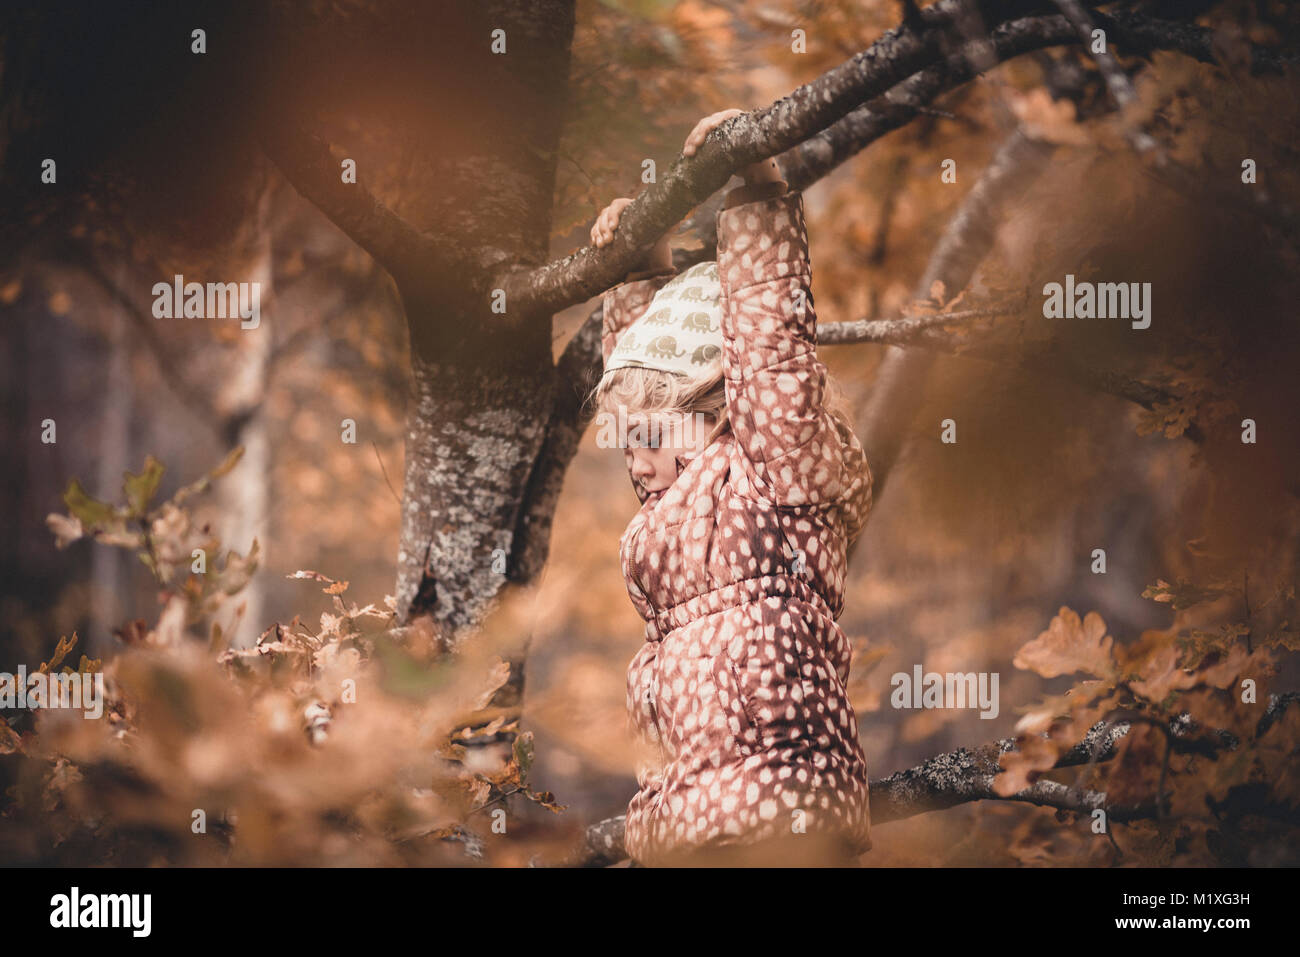 Girl hanging from tree branch in Sodermanland, Sweden - Stock Image